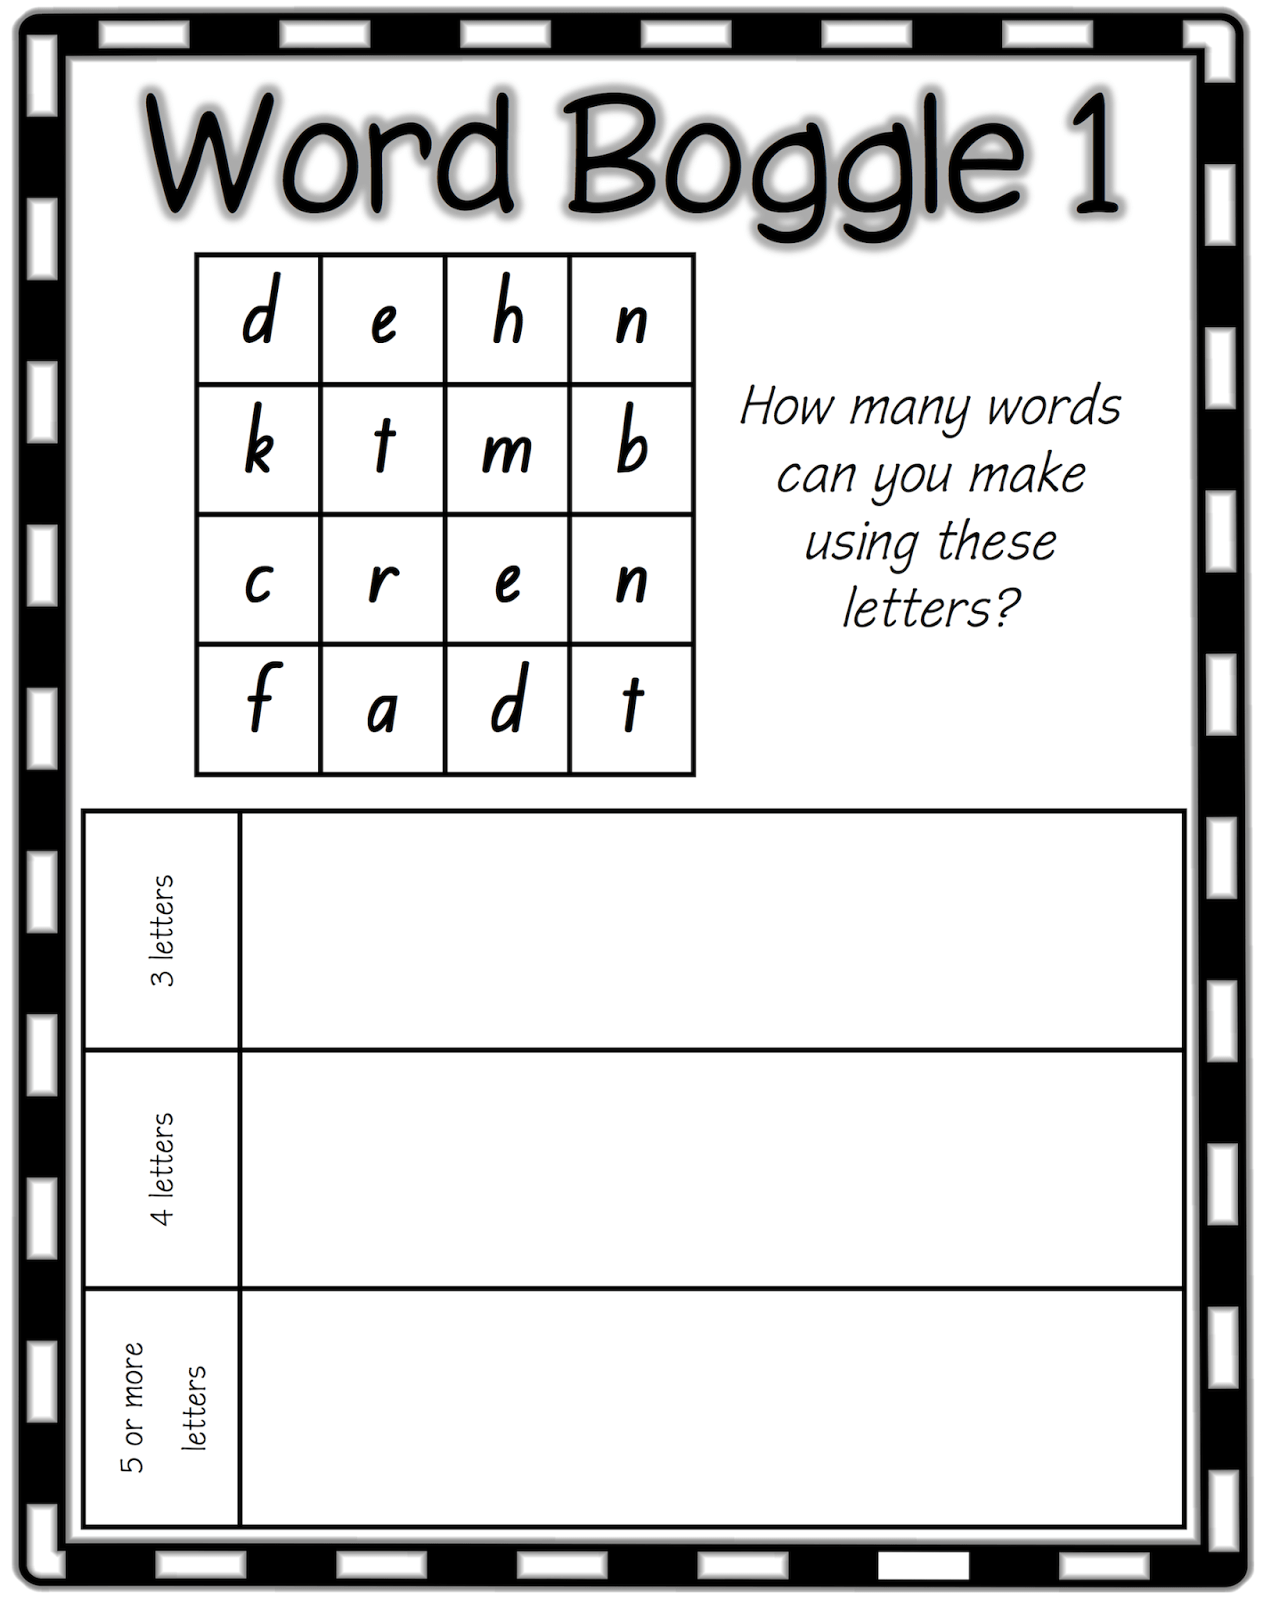 Boggle Word List